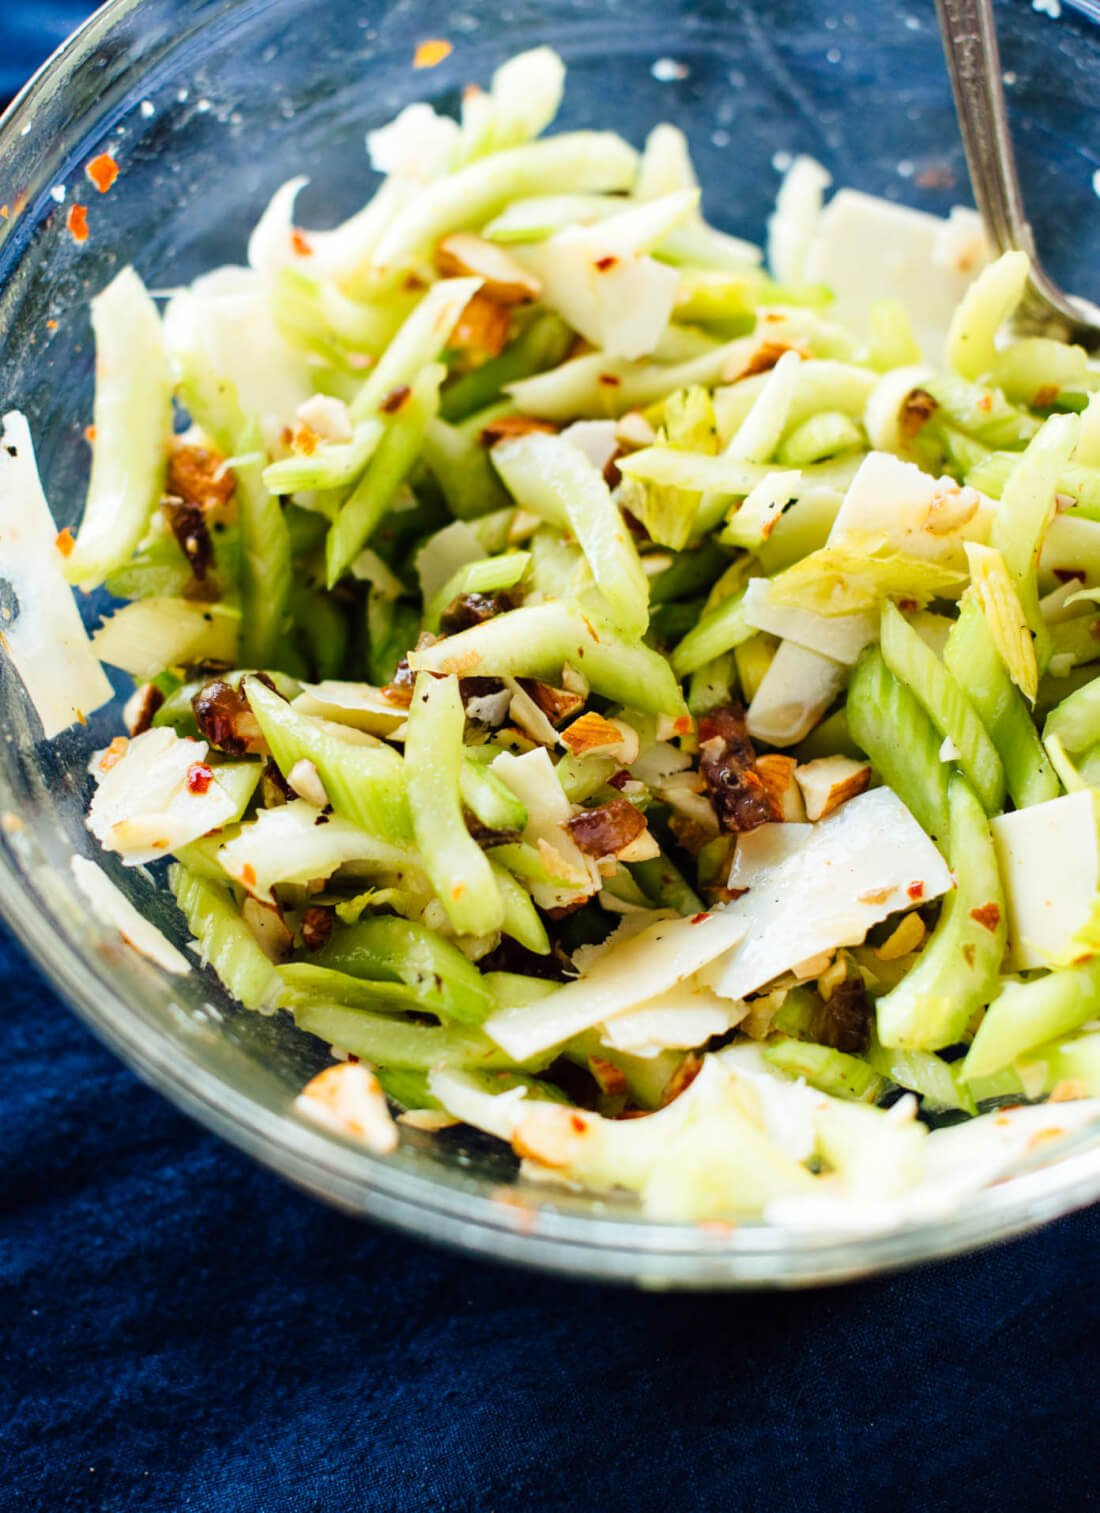 Celery Salad with Dates, Almonds and Parmesan